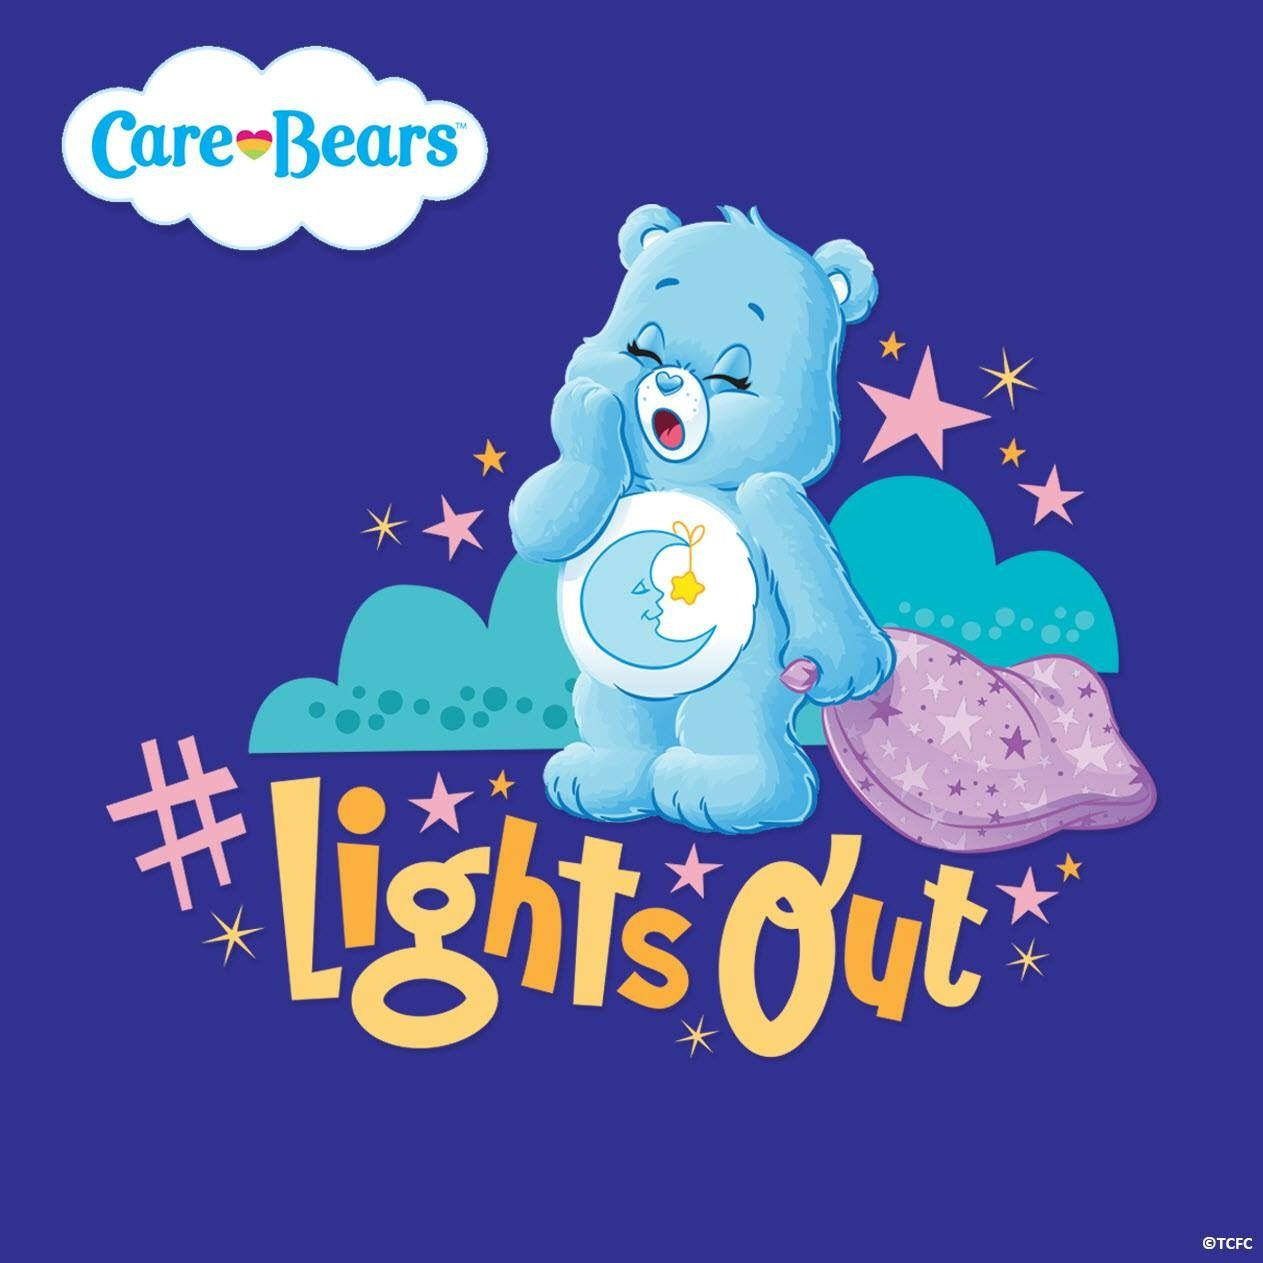 Care Bears Cousins By Karen Twitch On Care Bears Amp Rainbow